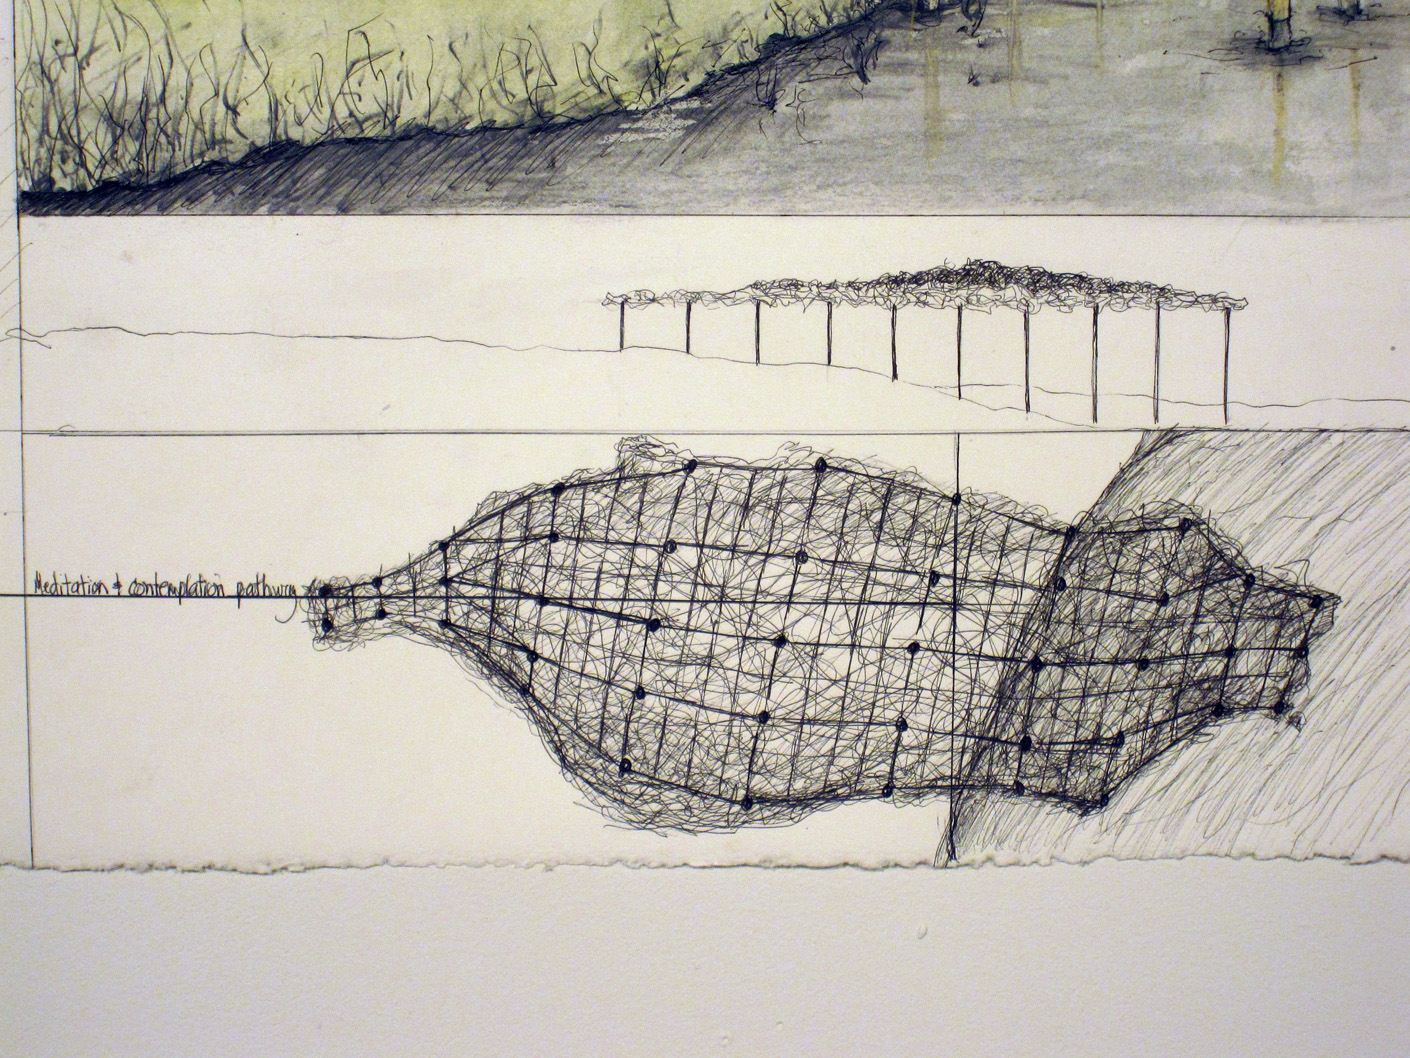 Proposal Drawing #1  Space for Contemplating Carrying Capacity: The Taiwan Tangle  2009  Proposal for Guandu Nature Park International Sculpture Festival, Taipei, Taiwan, 2009  Ink and mixed media on paper. detail of plan view.